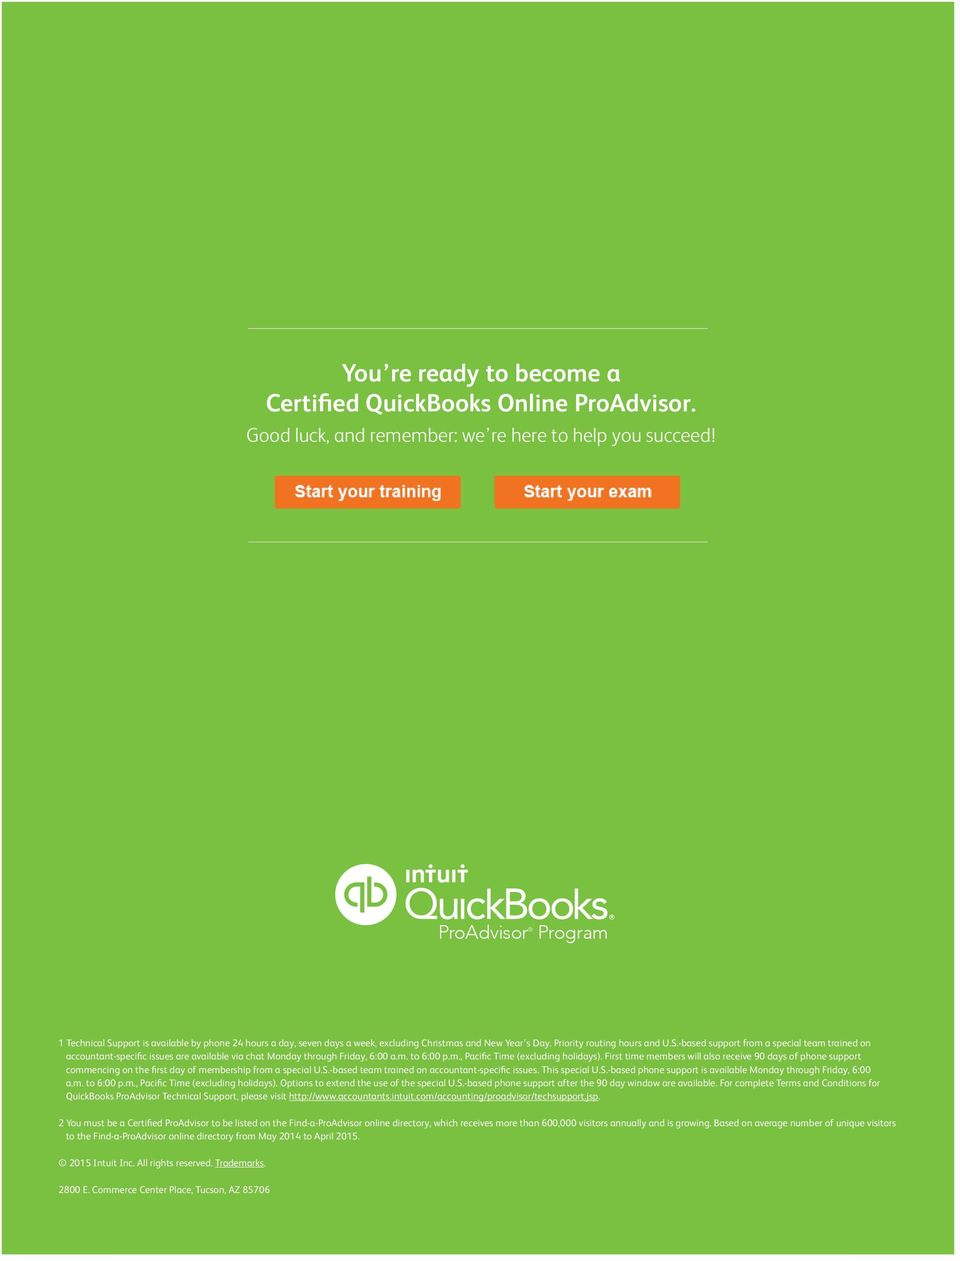 Acing the quickbooks online certification exam pdf m to 600 pm pacific time excluding holidays first fandeluxe Gallery